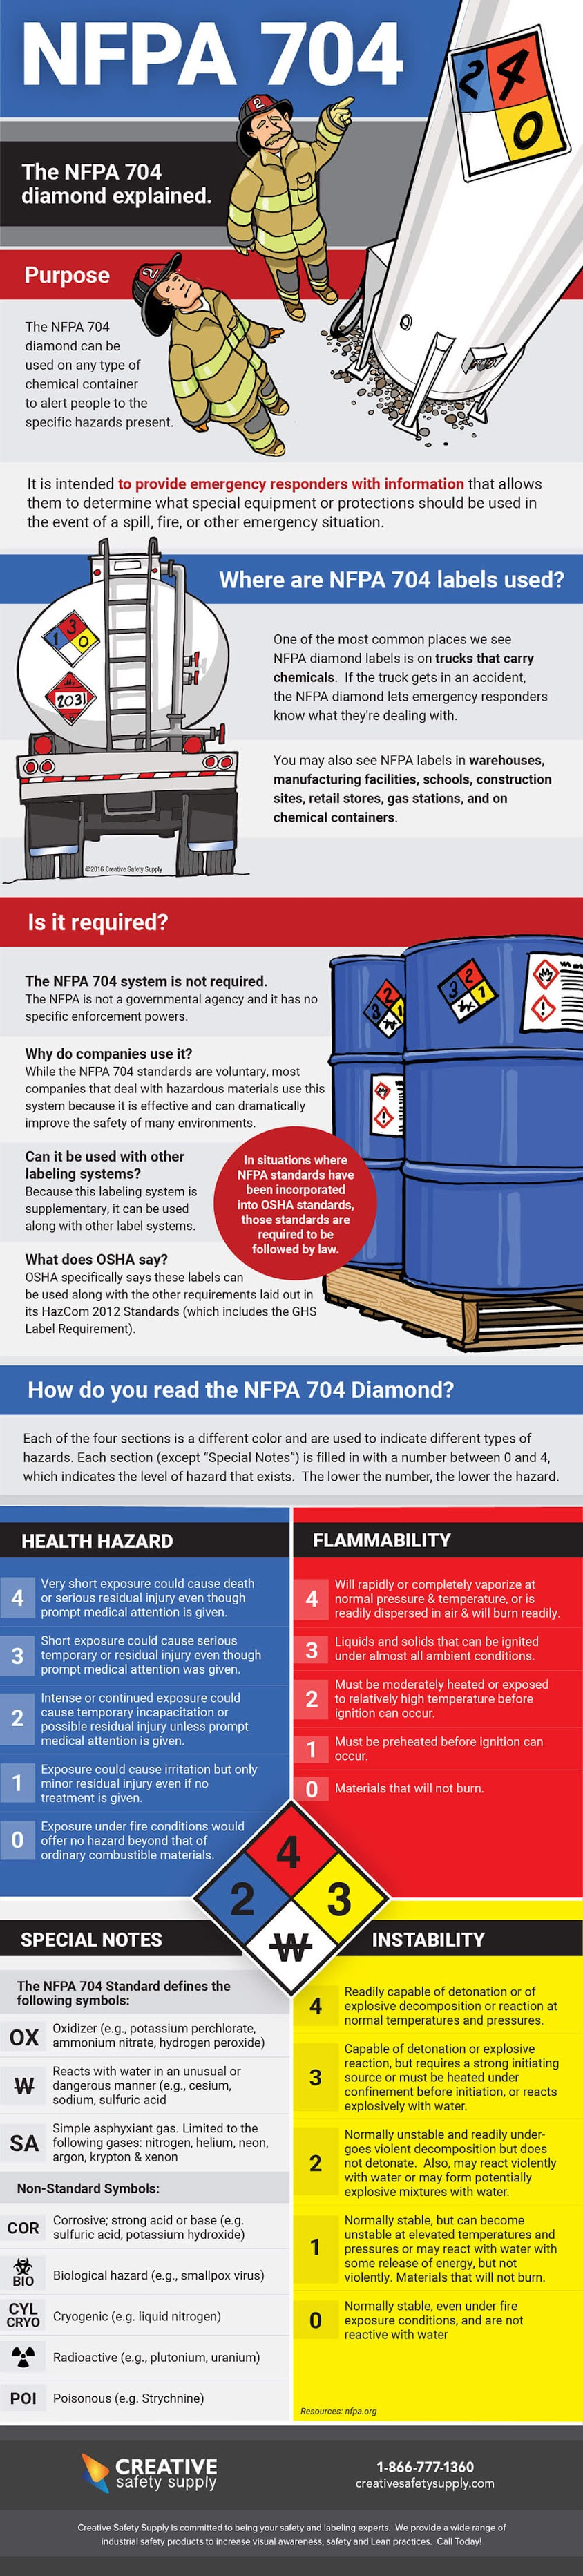 The NFPA 704 Diamond Explained #infographic #NFPA #Labeling #Safety #Heath Hazard #Flammability